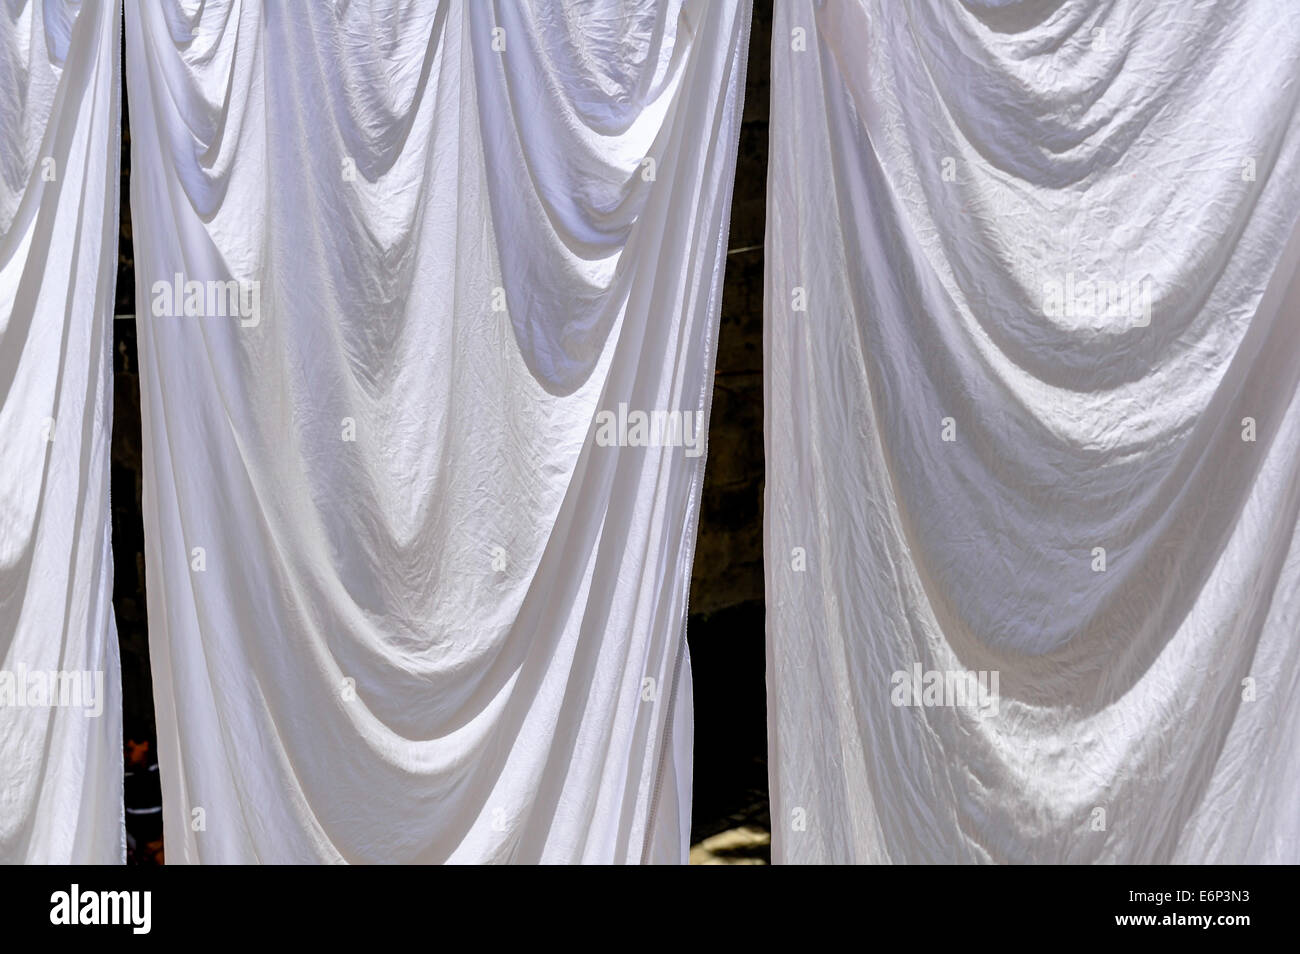 white-bedding-sheets-hanging-to-dry-on-a